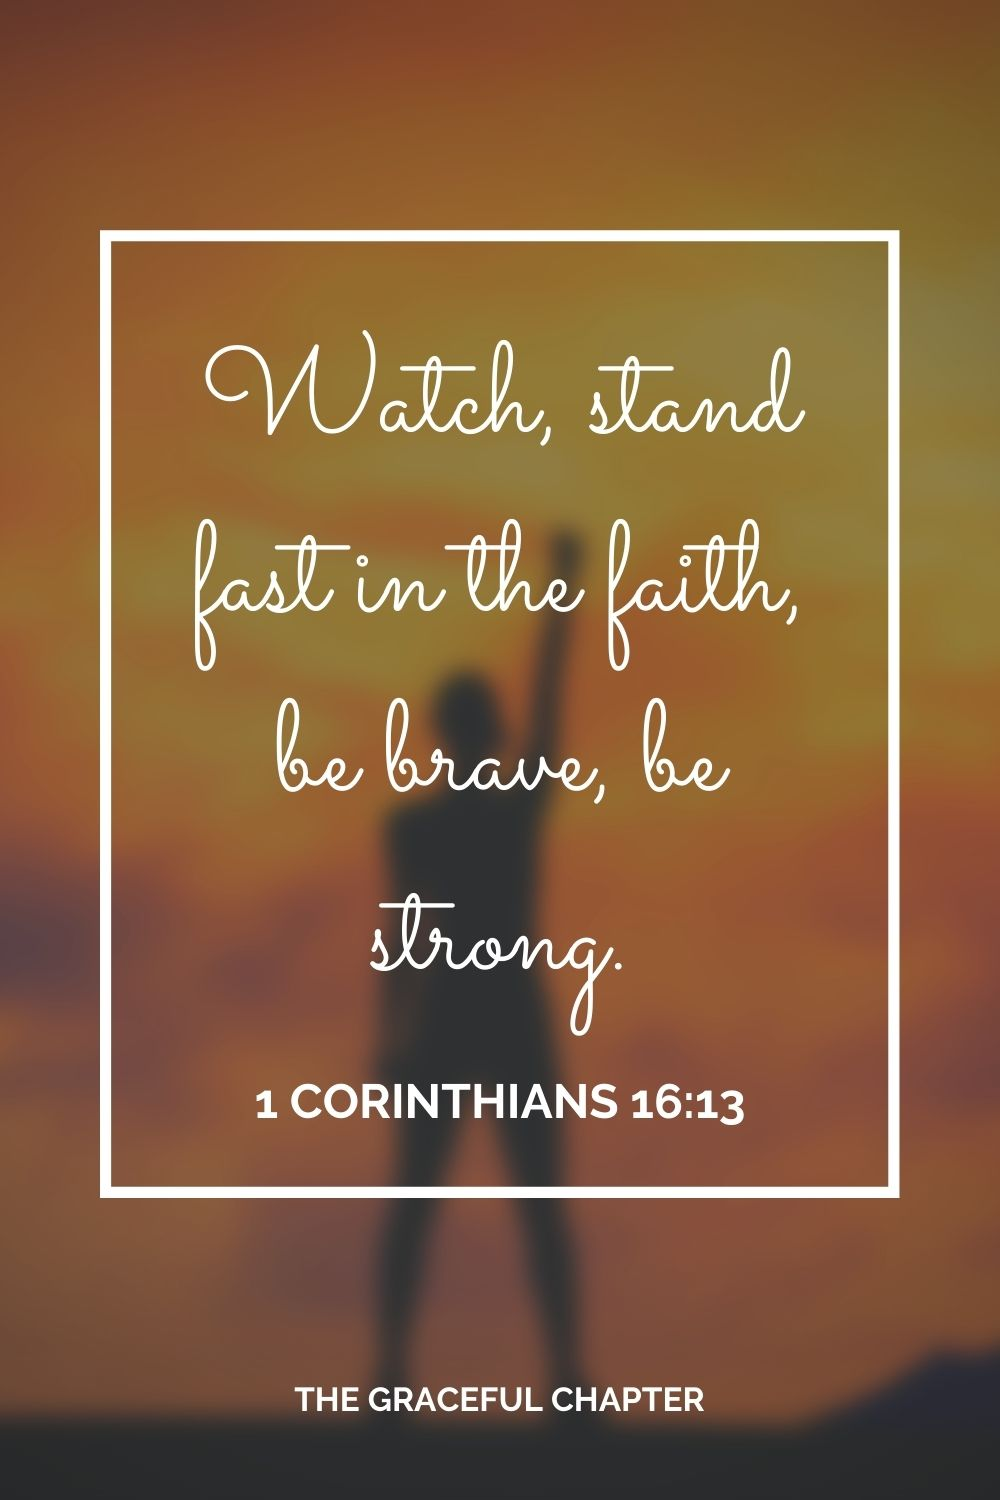 Watch, stand fast in the faith, be brave, be strong. 1 Corinthians 16:13